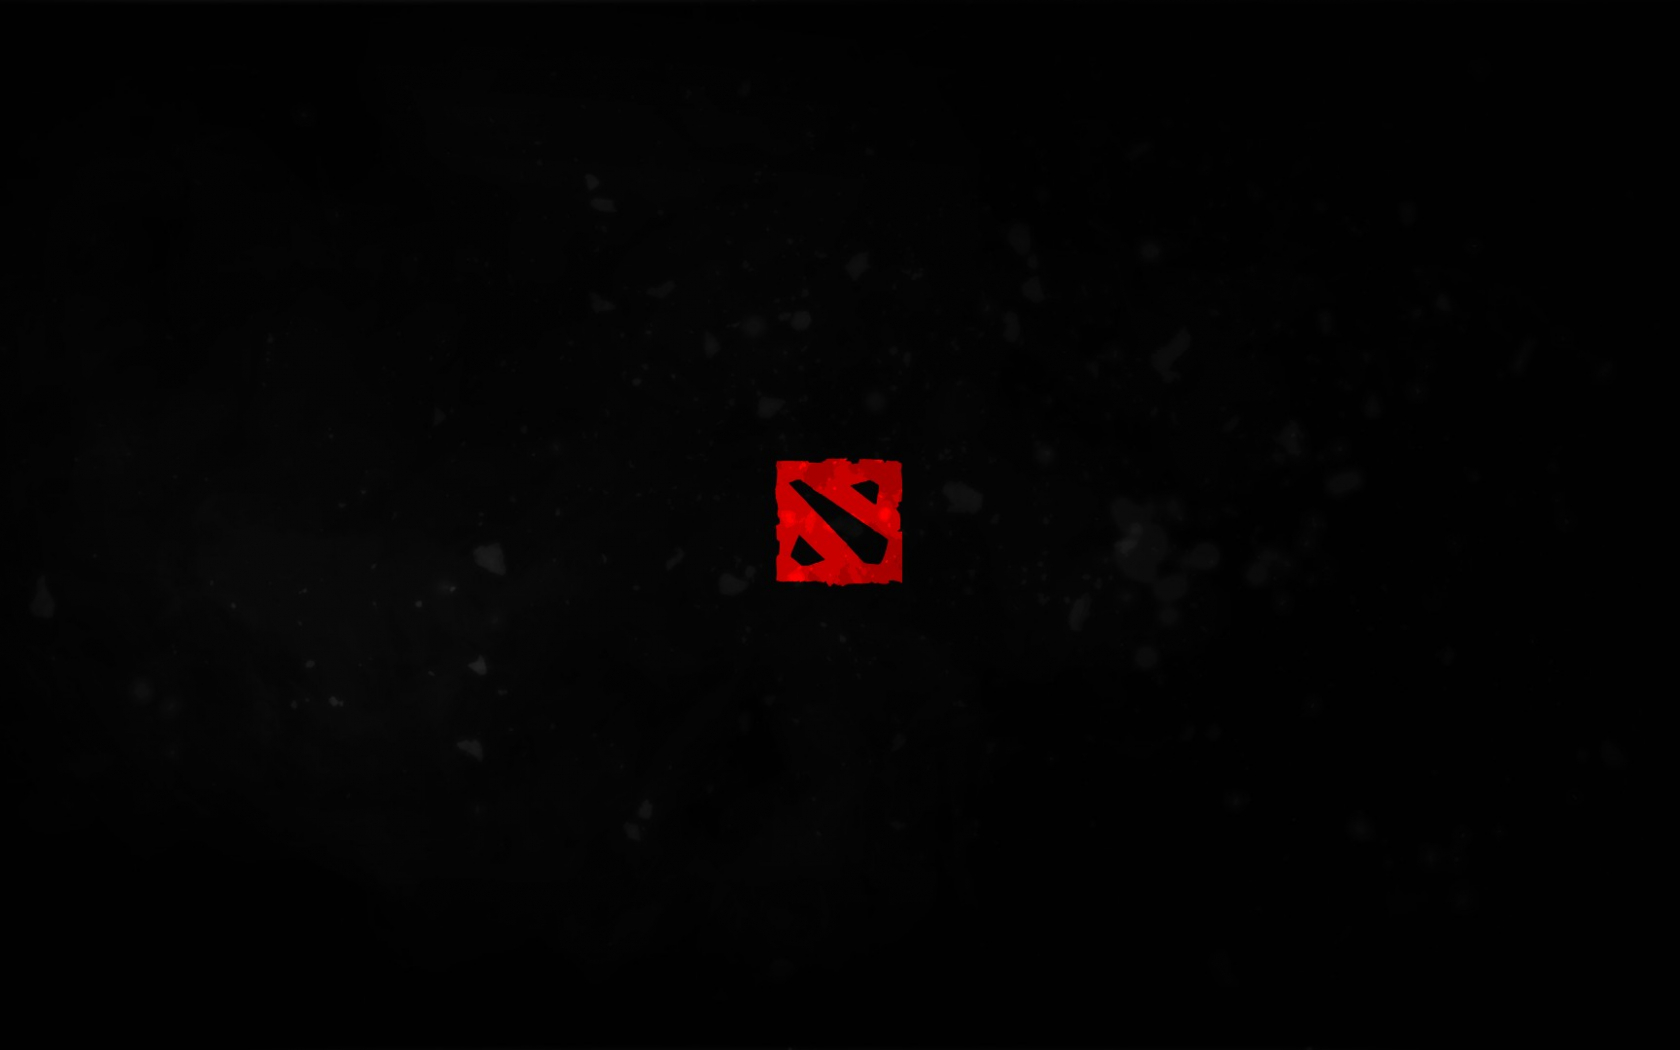 Free Download Dota 2 Moba Pc Gaming Wallpapers Hd Desktop And Mobile 1920x1080 For Your Desktop Mobile Tablet Explore 74 Gaming Desktop Wallpaper Optic Gaming Desktop Wallpaper Free Gaming